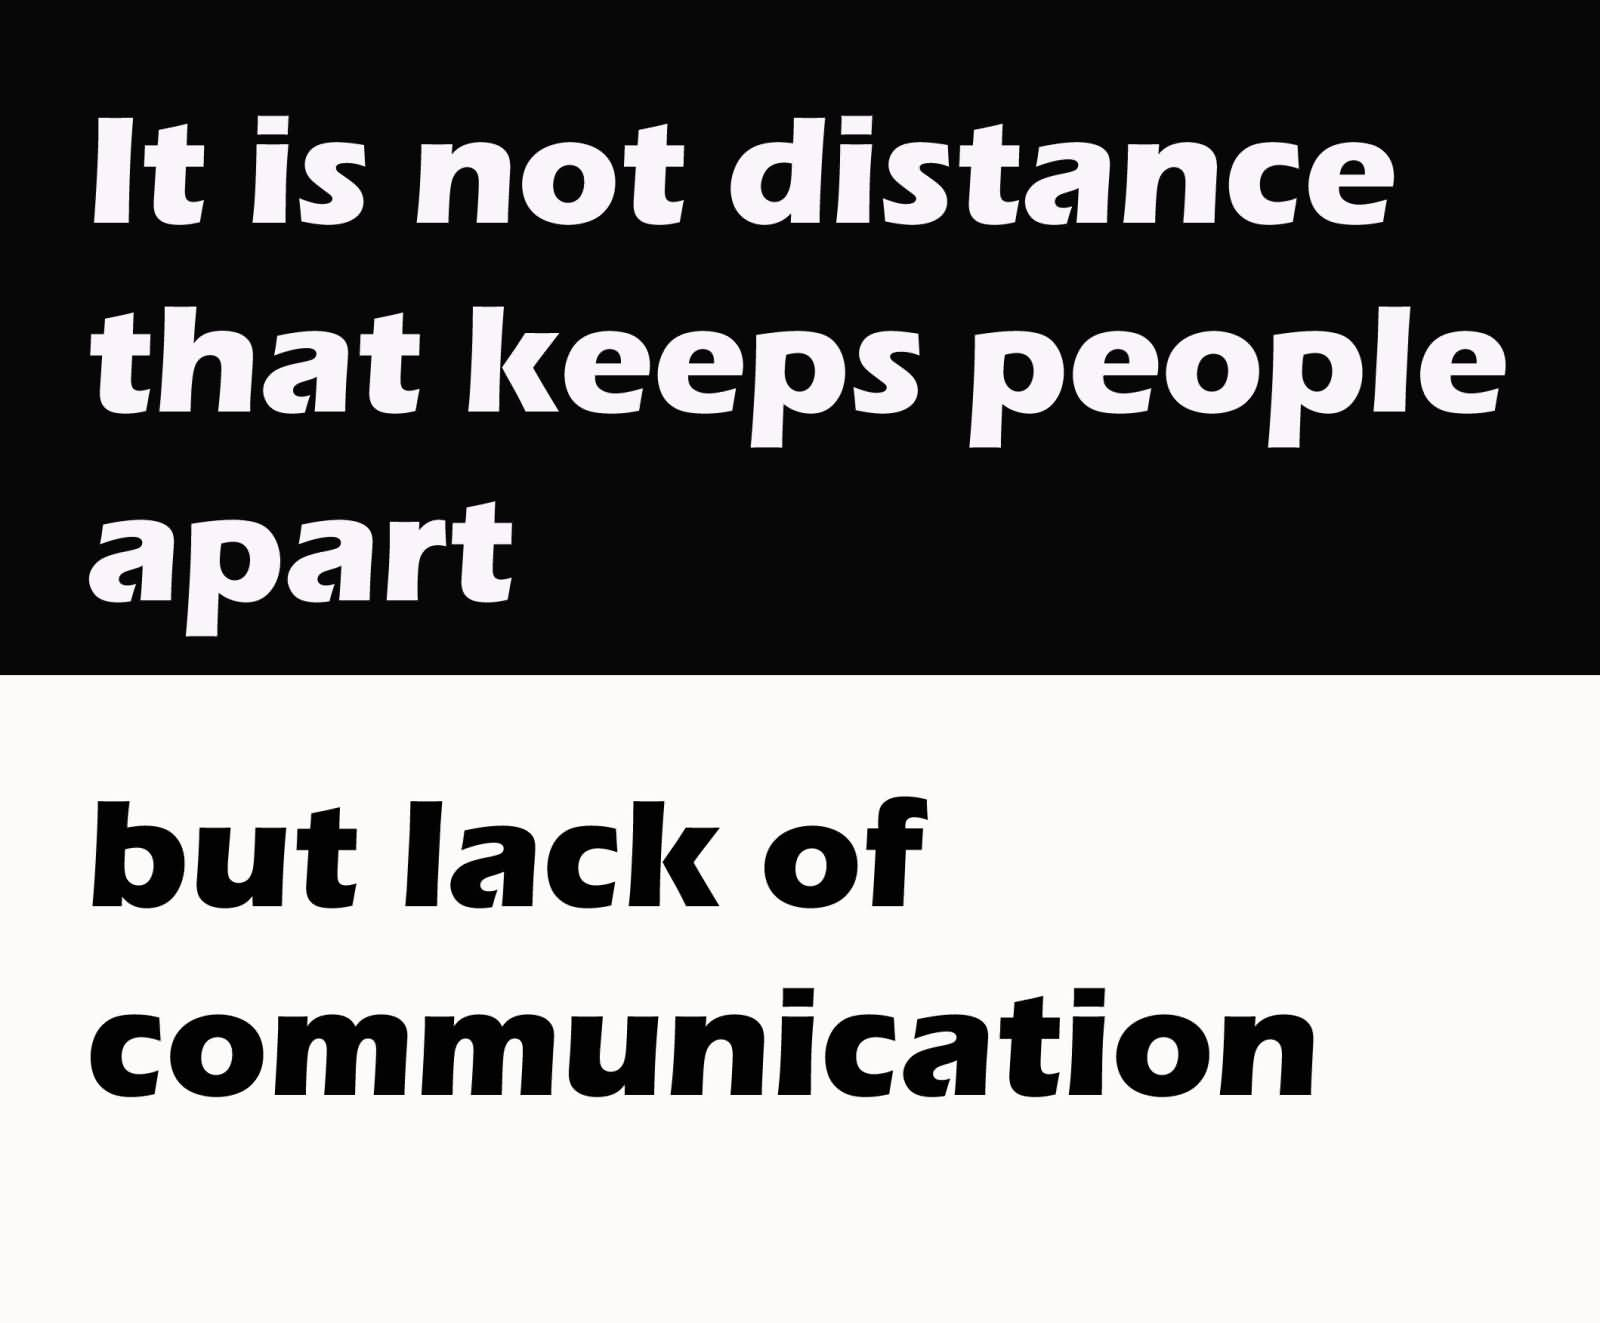 It is not the distance that keeps the people apart but lack of communication